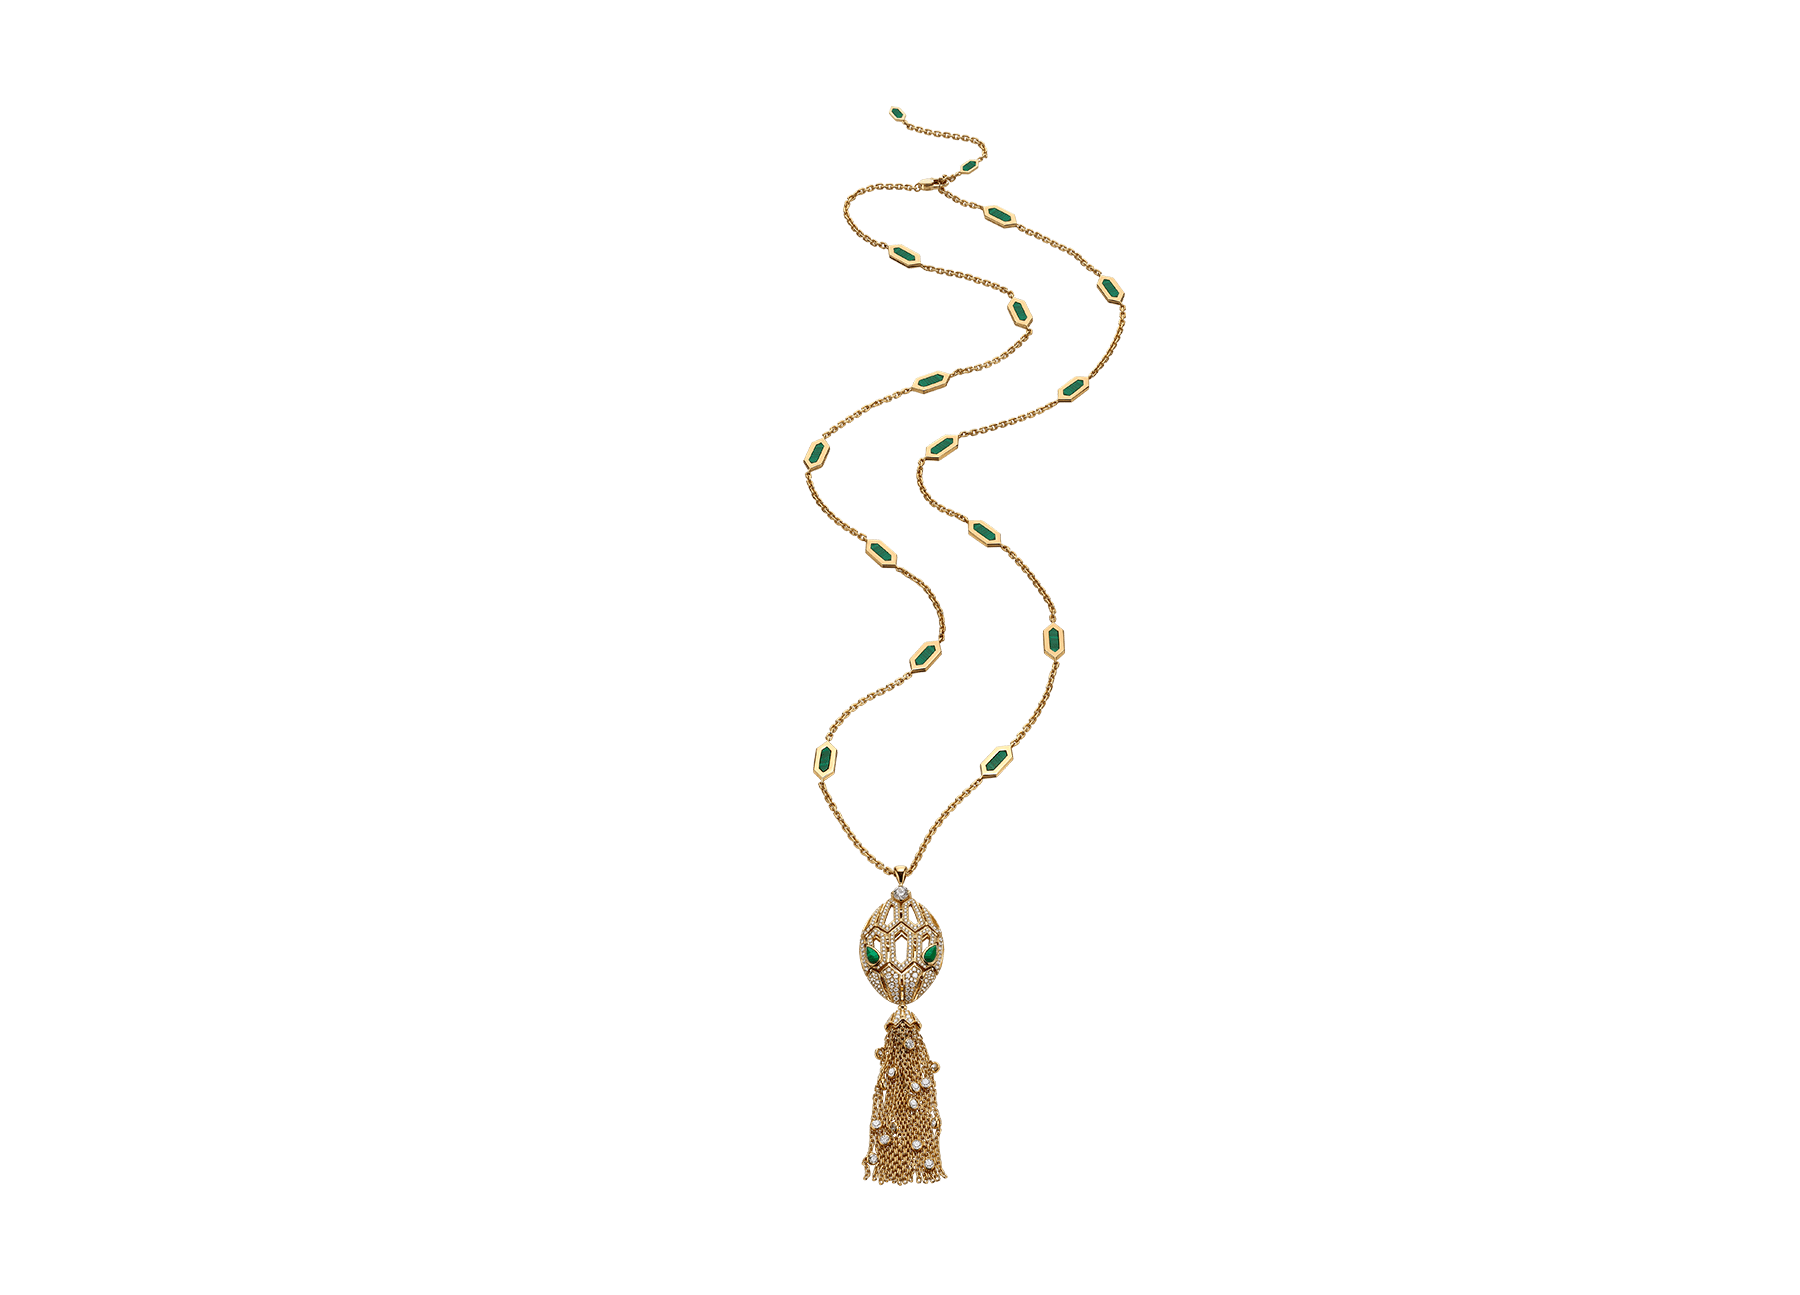 Serpenti 18 kt yellow gold necklace with tassel set with a diamond, pavé diamonds and malachite eyes 354101 image 1